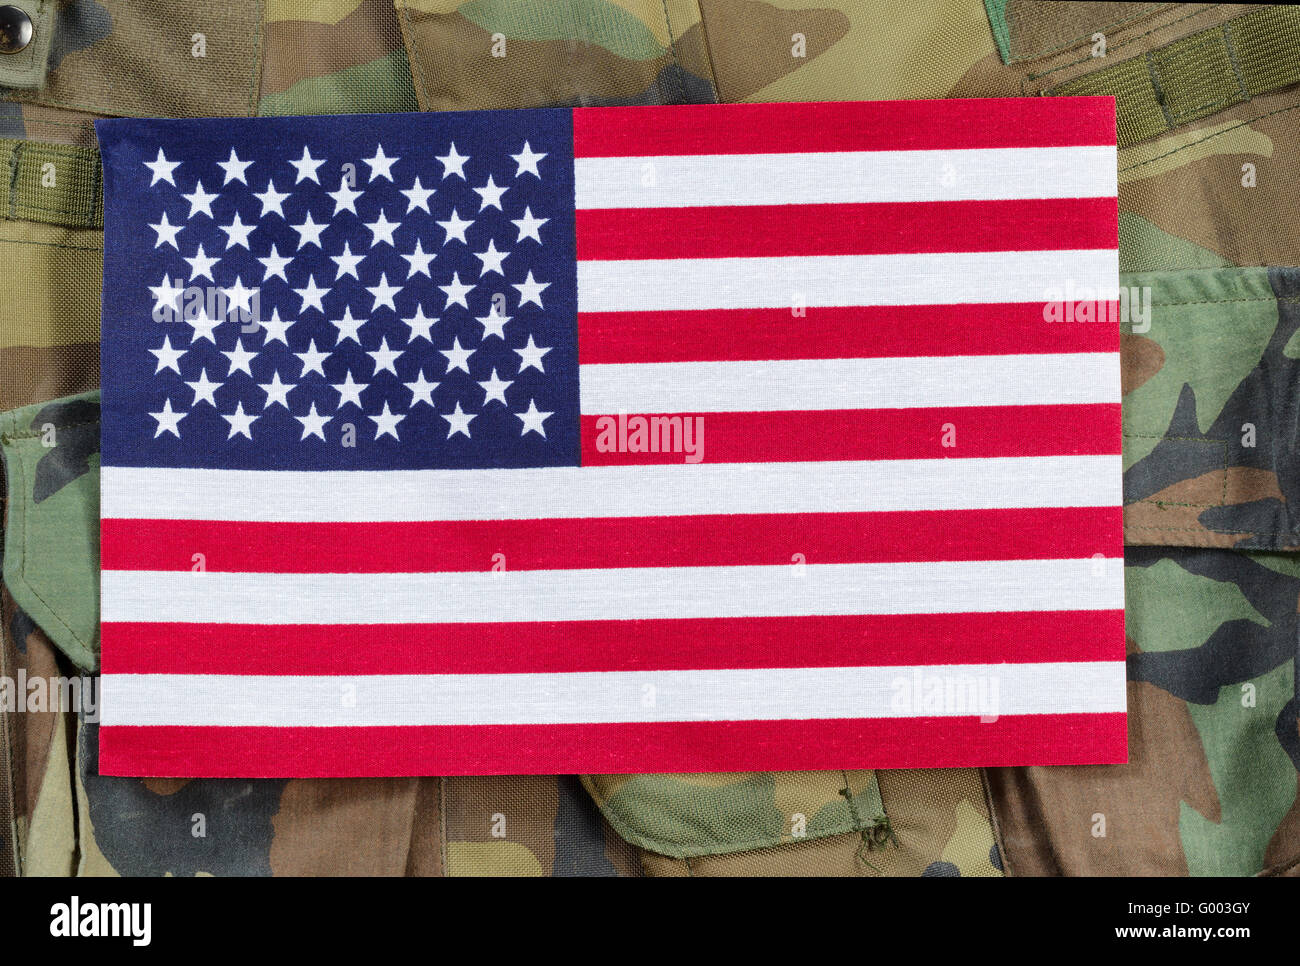 united states flag with military background